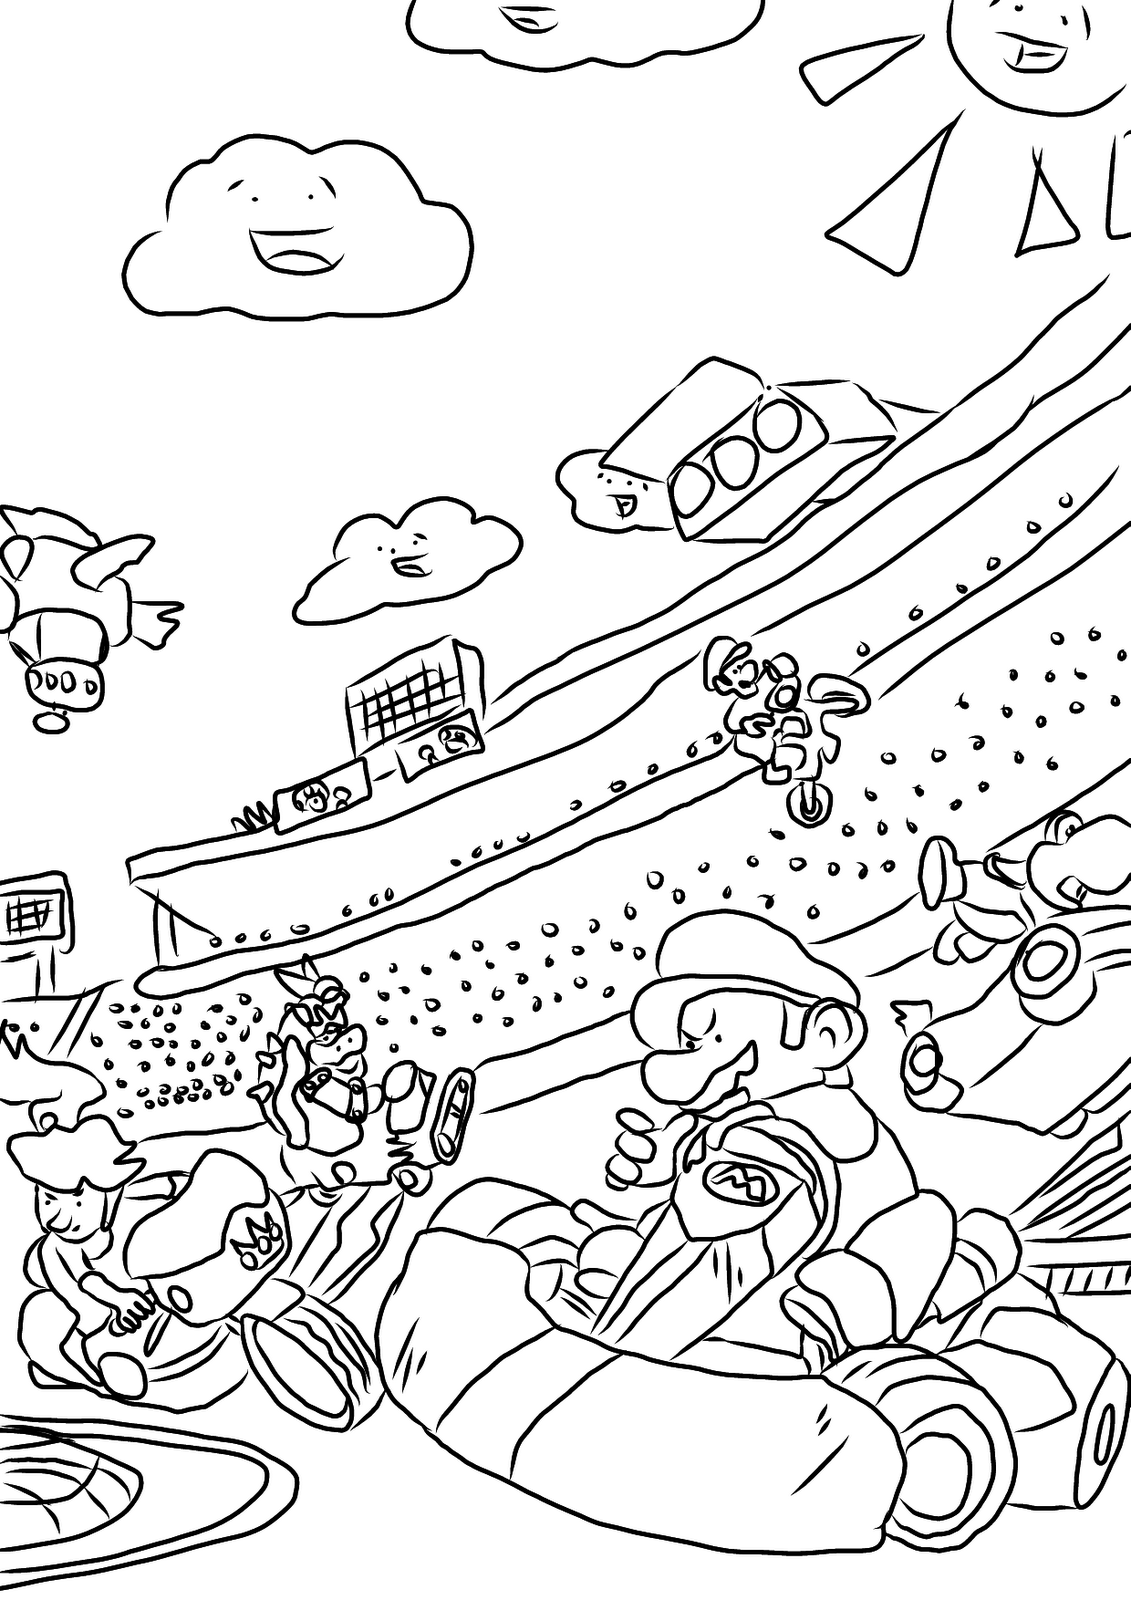 10 Pics of Super Mario Kart Coloring Pages - Mario Coloring Pages ...